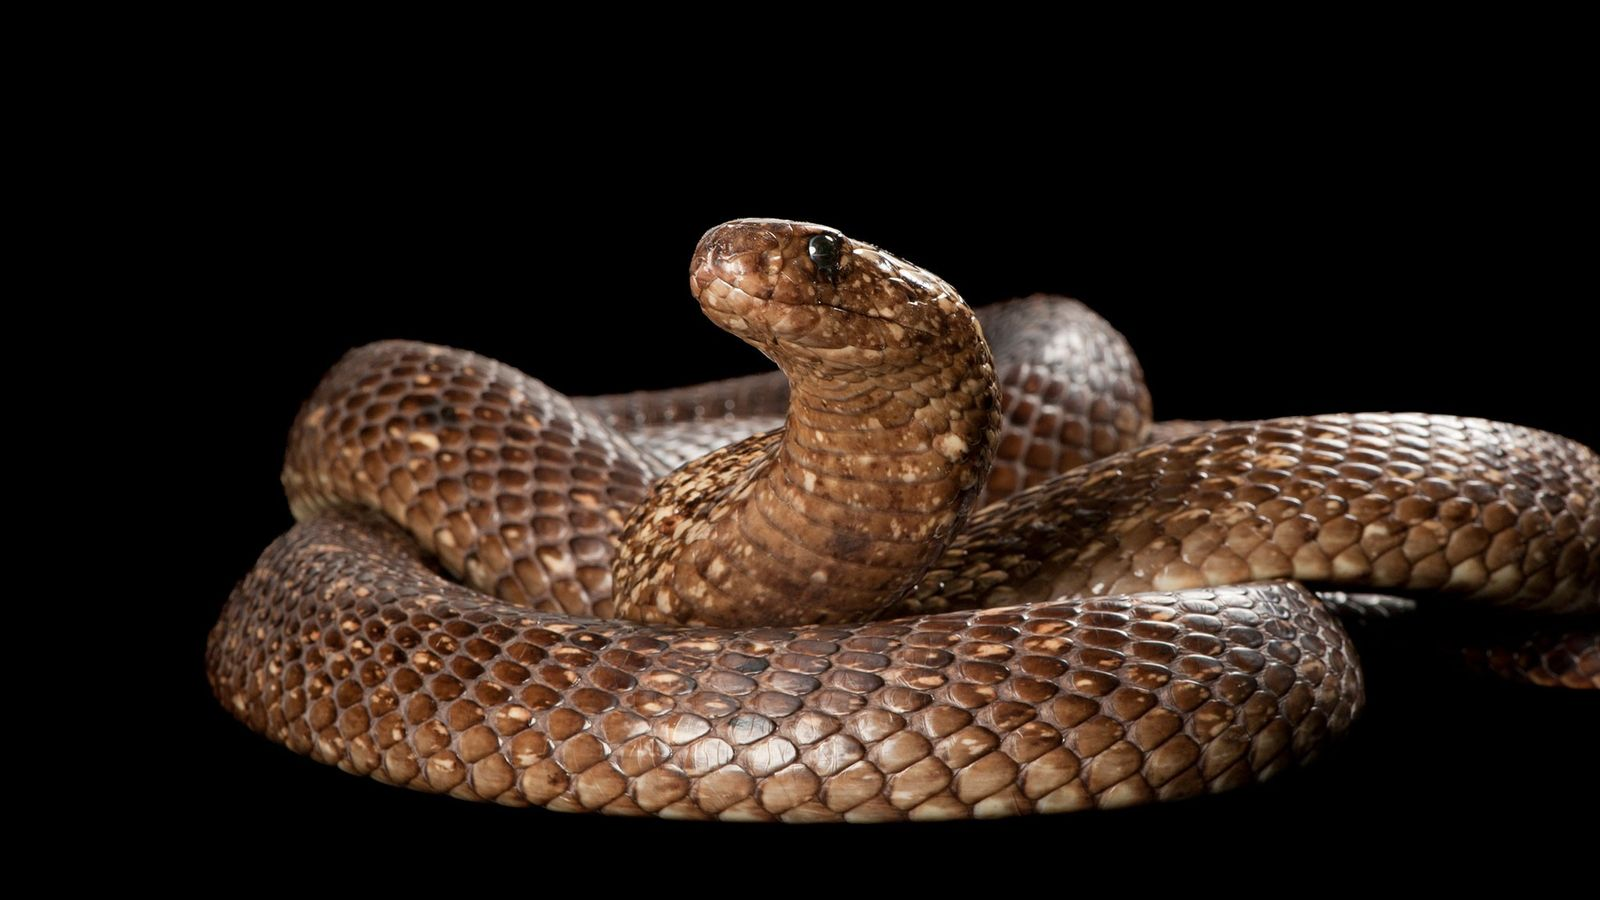 Cape cobras ('Naja nivea') grow up to five feet in length, have potent venom, and have ...